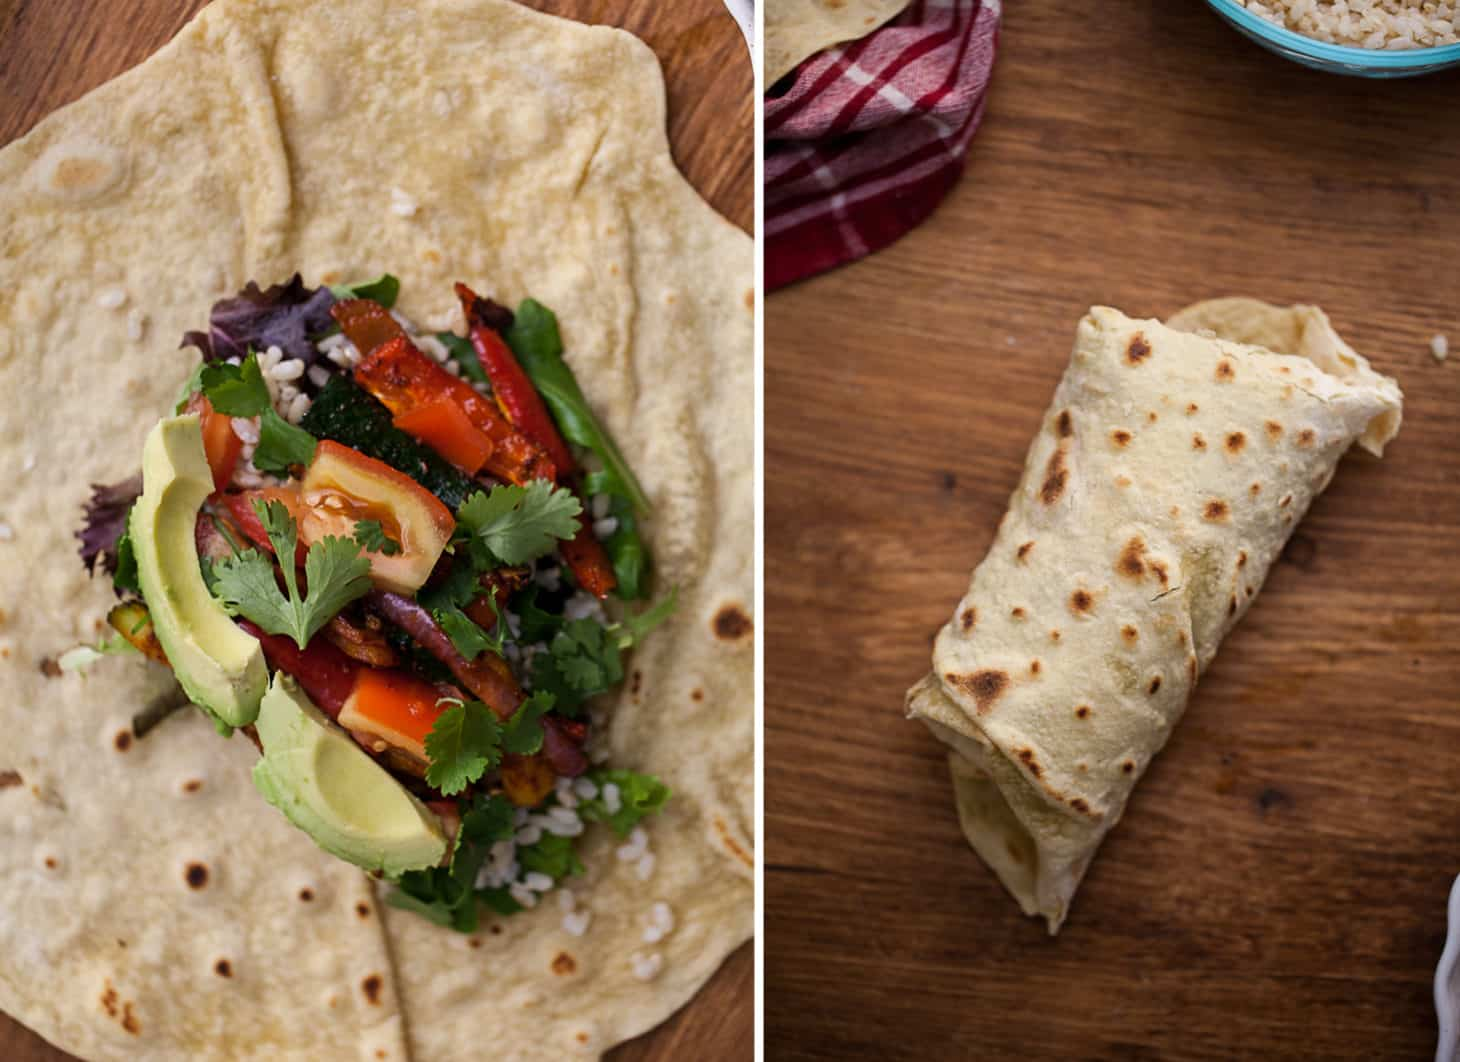 Spiced Zucchini + Rice Burrito with Homemade Einkorn Flour Tortillas